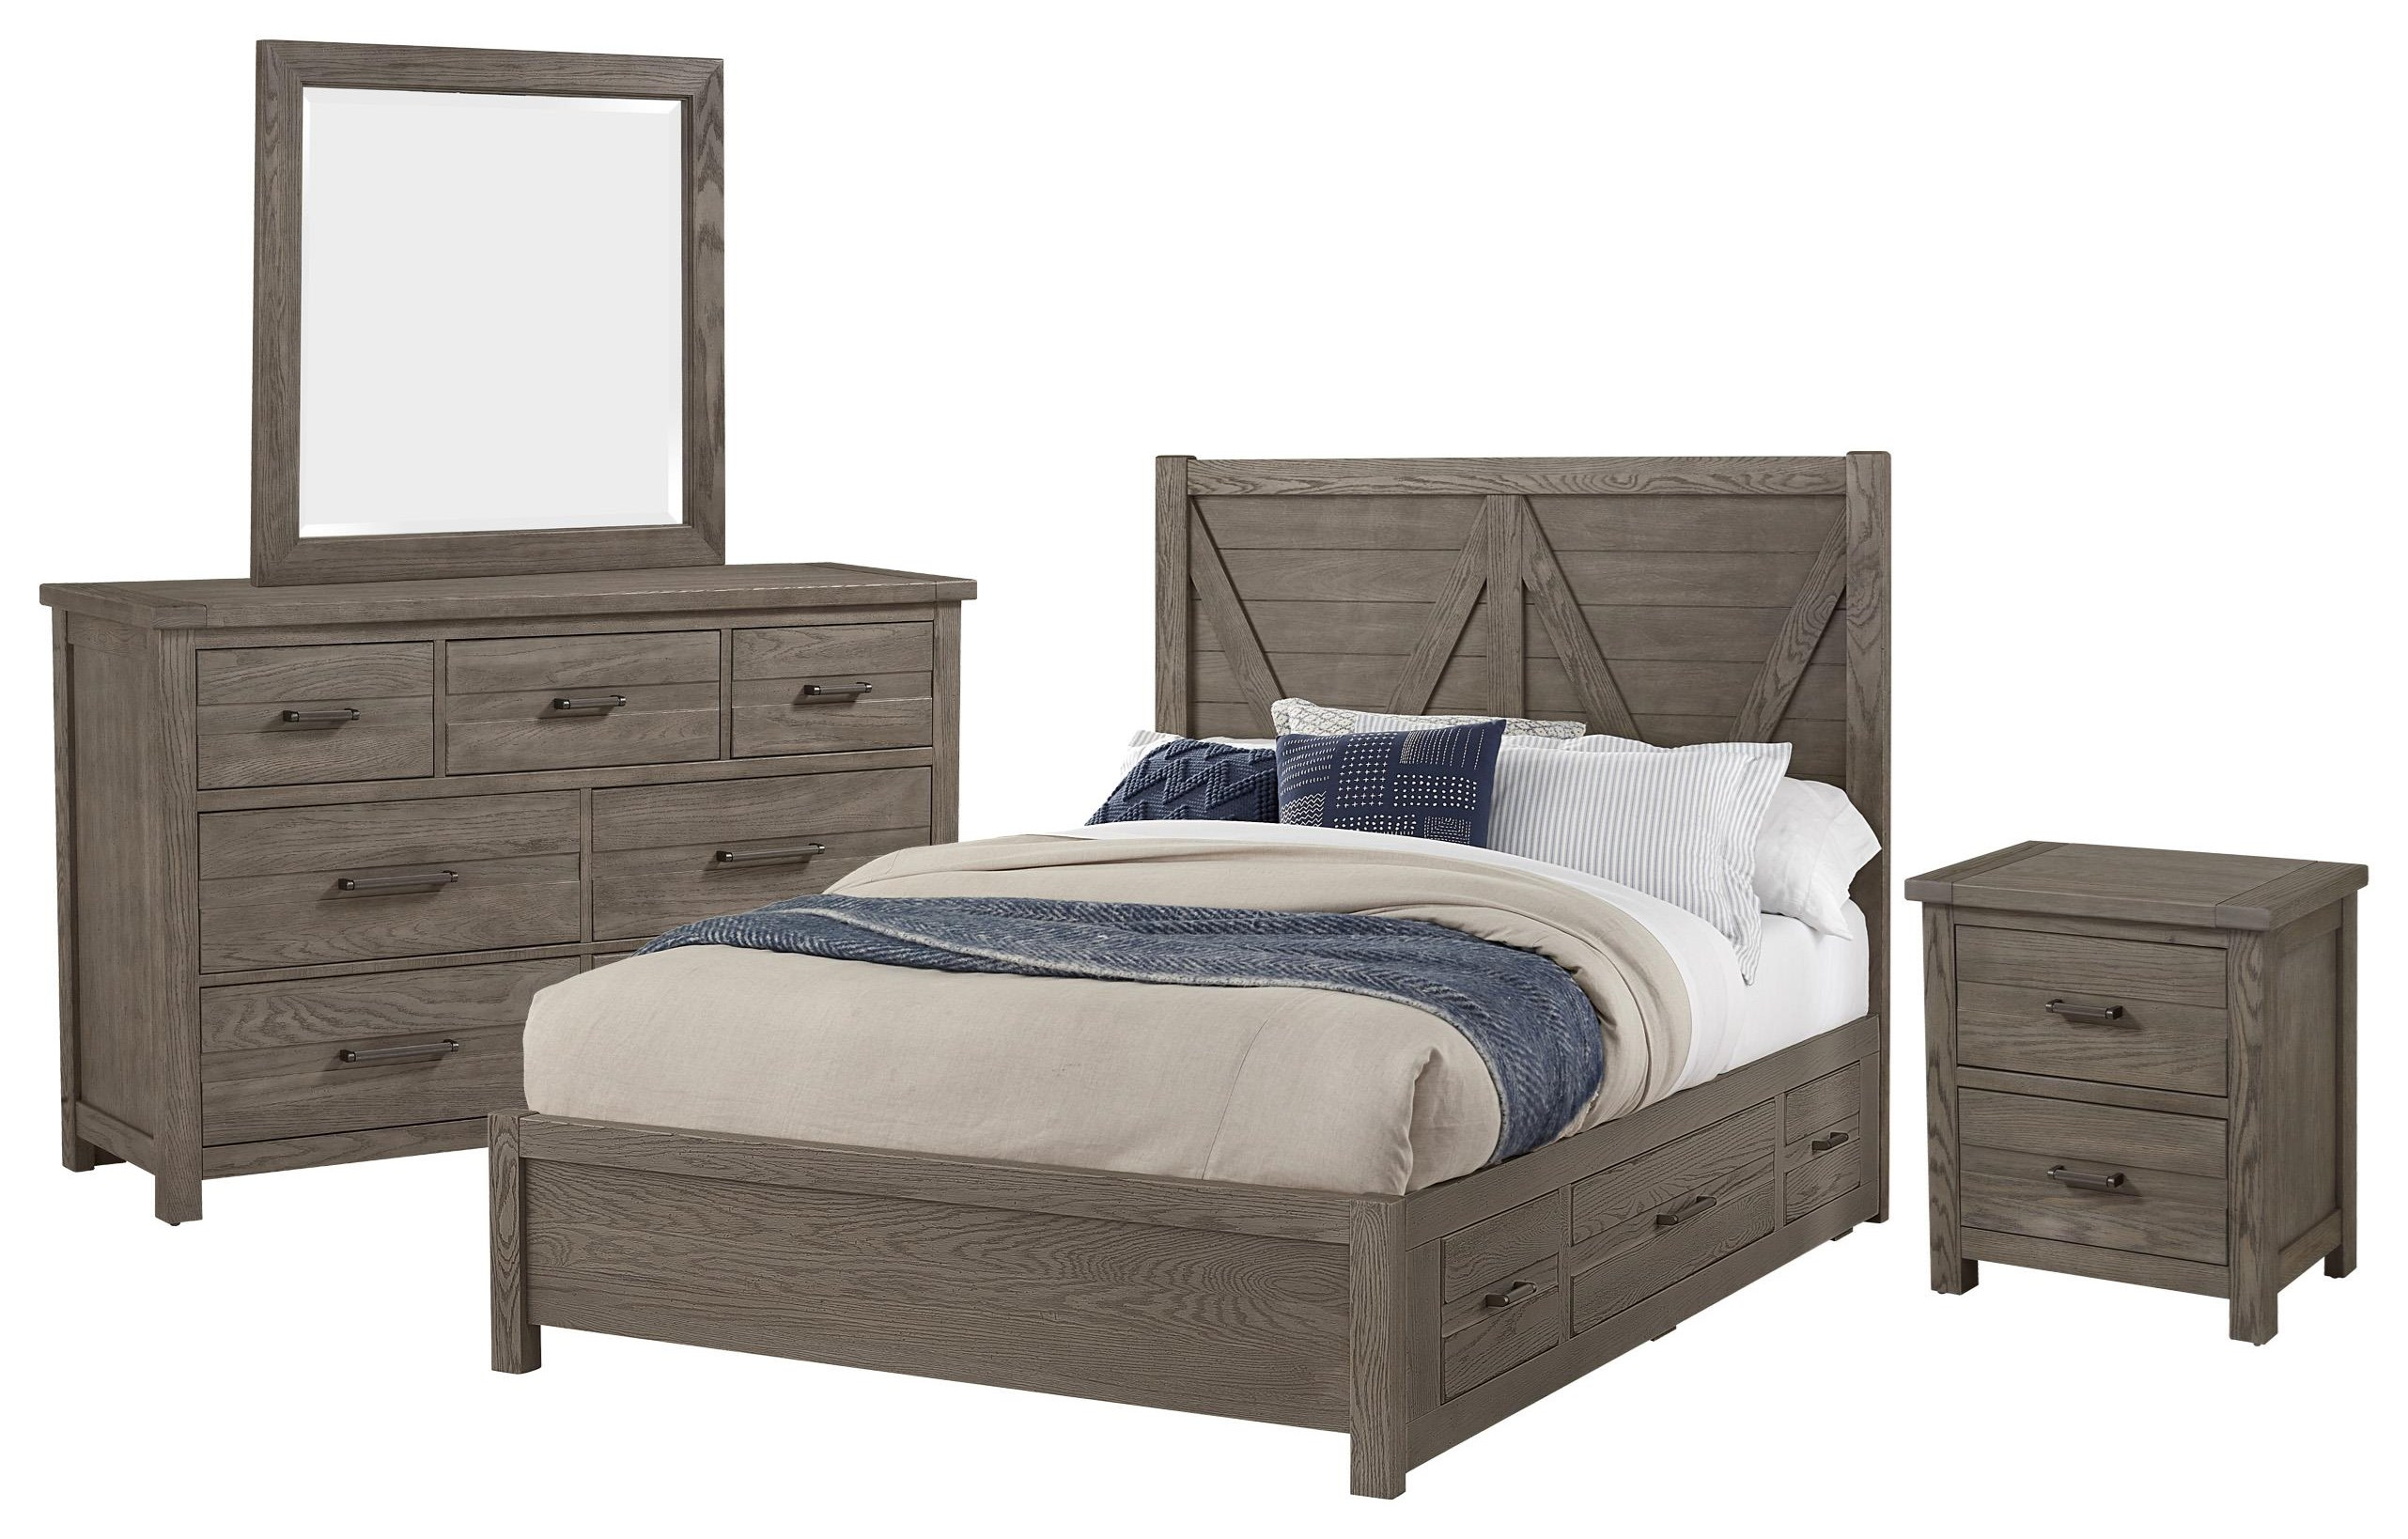 Highland King V Storage, Dresser, Mirror, Nightstand by Vaughan Bassett at Johnny Janosik